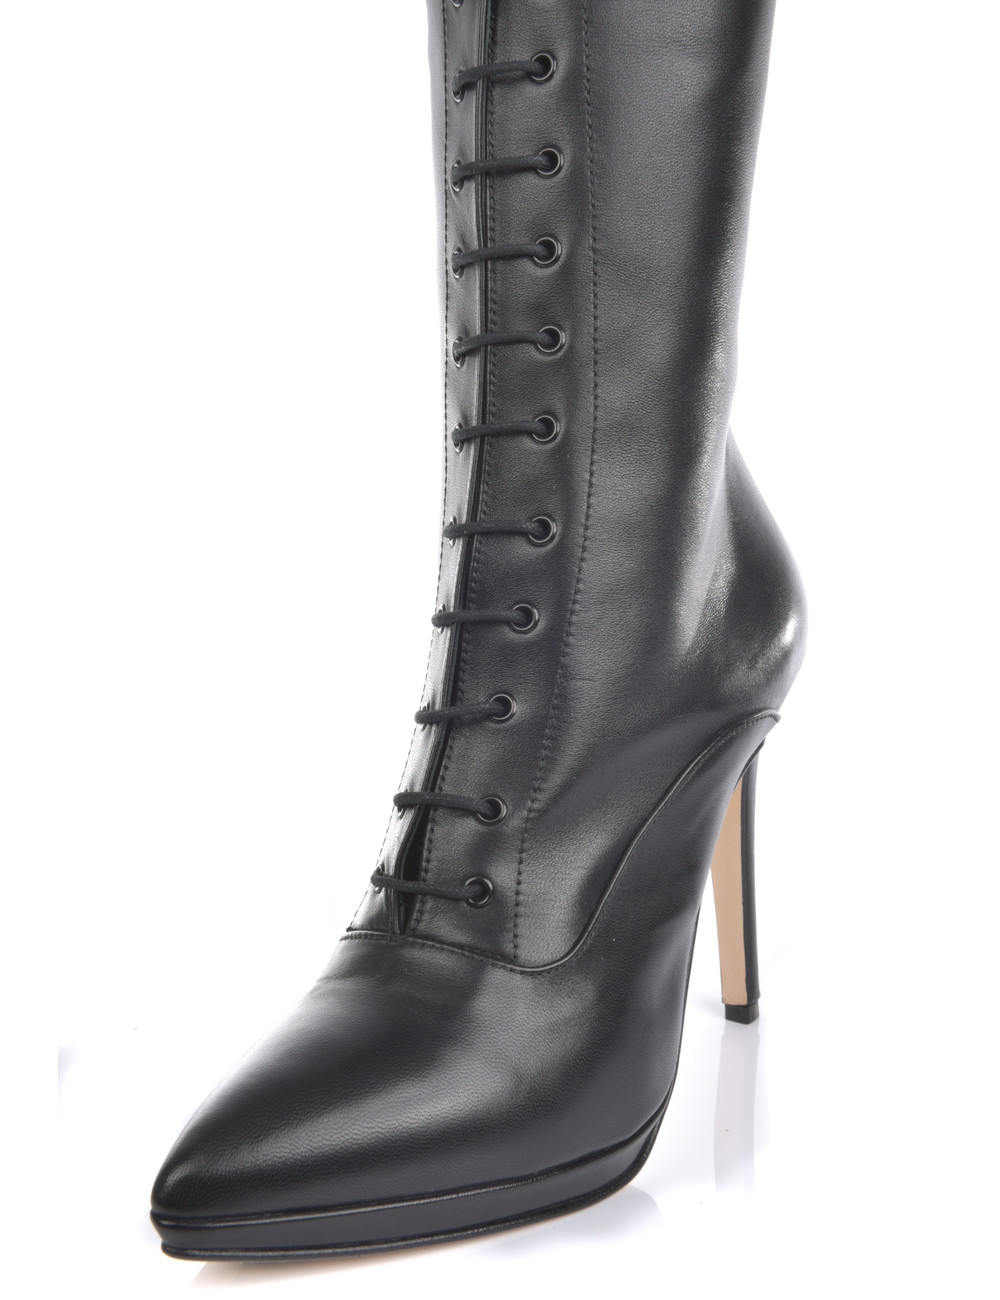 Sanctum  High Italian lace-up knee boots JUNO with stiletto heels in genuine leather